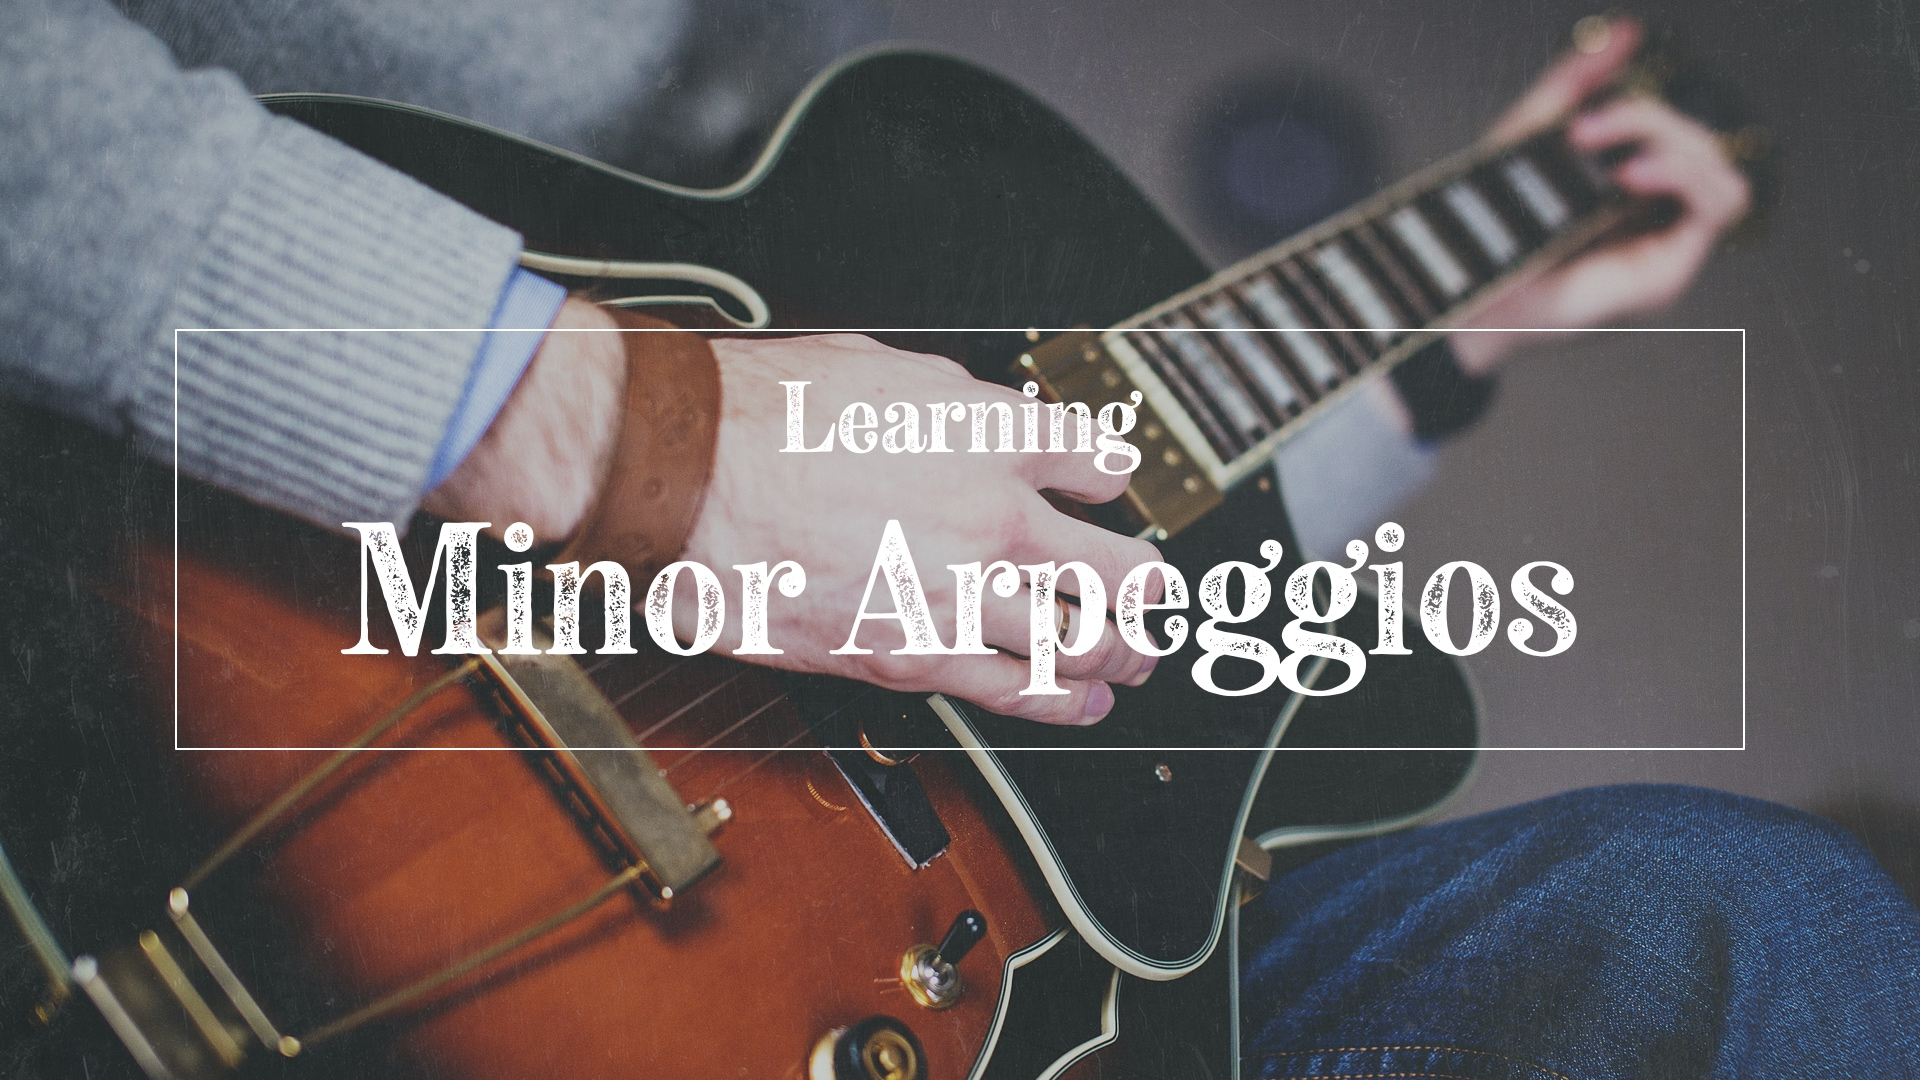 Learning minor arpeggios on guitar